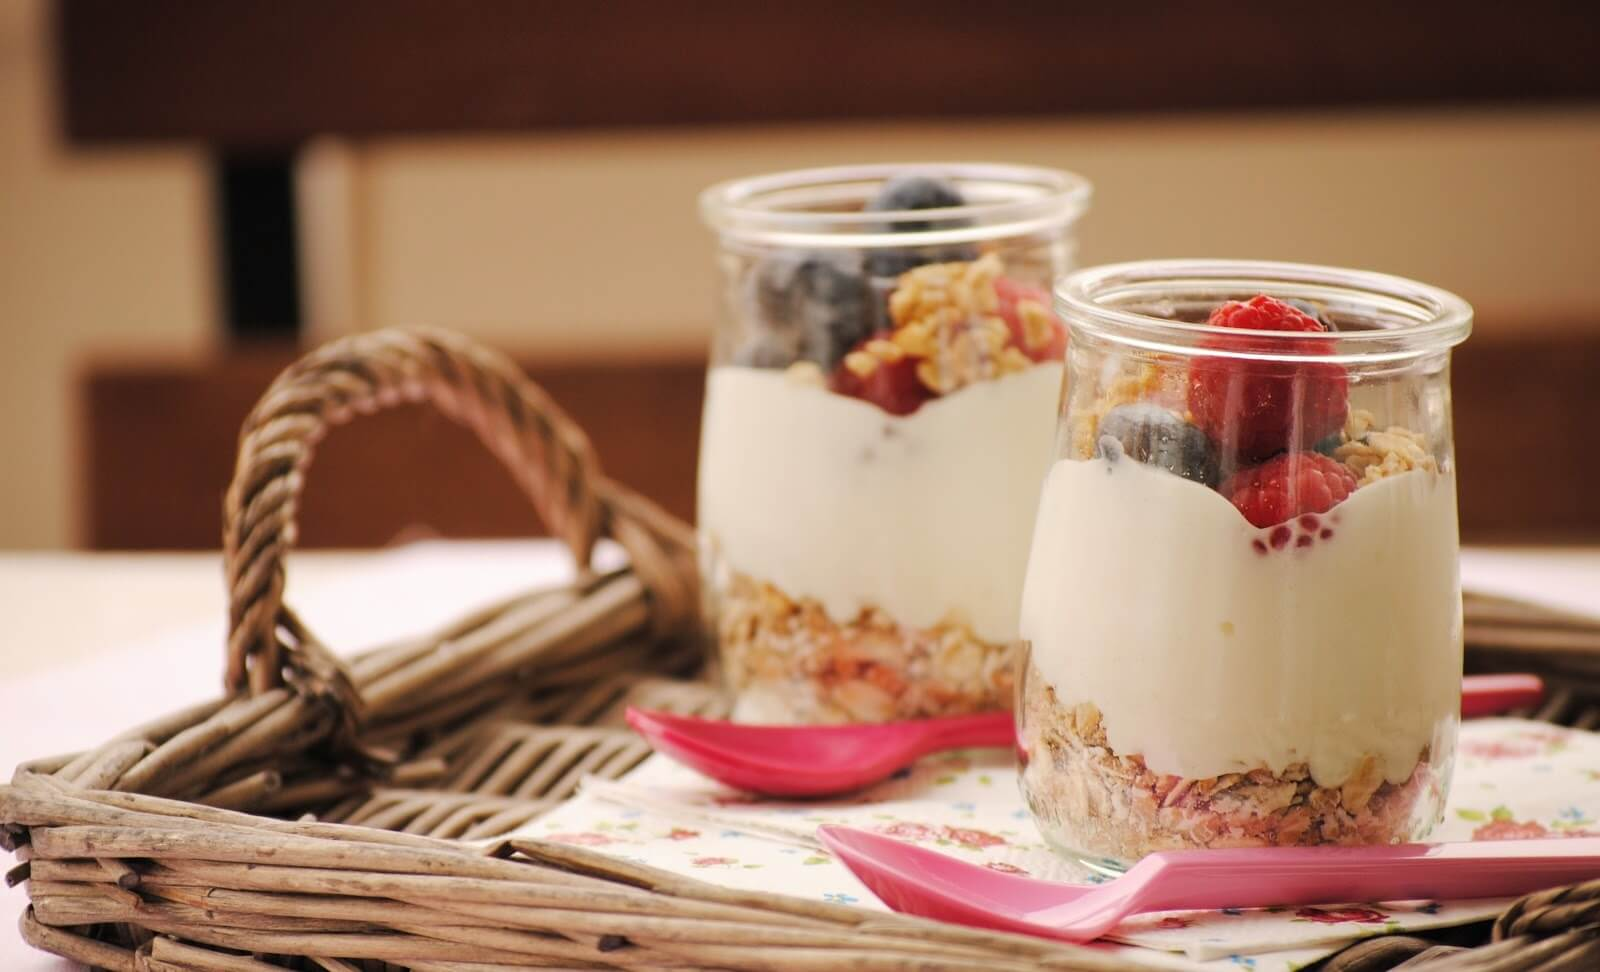 Two yogurts with fruit.